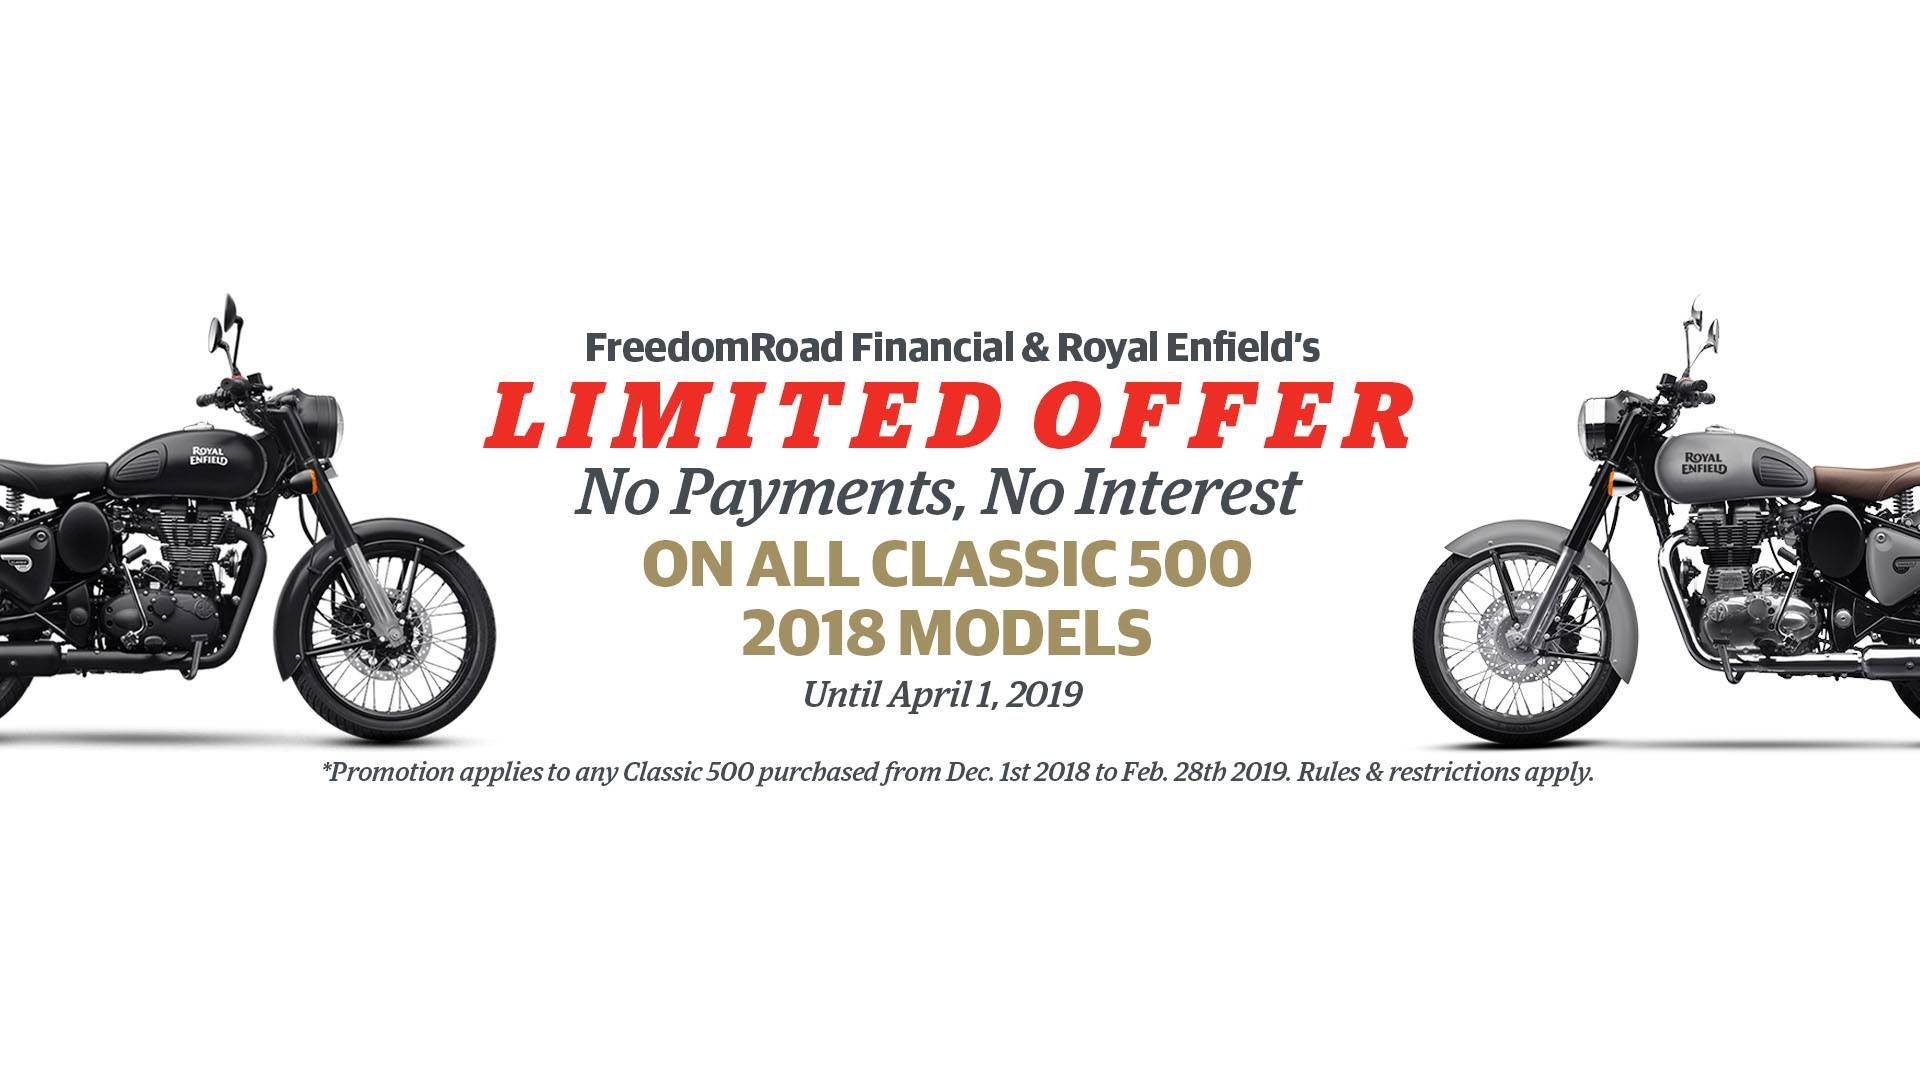 Royal Enfield - No Payments, No Interest Until April 1, 2019 on 2018 Classic 500 Models